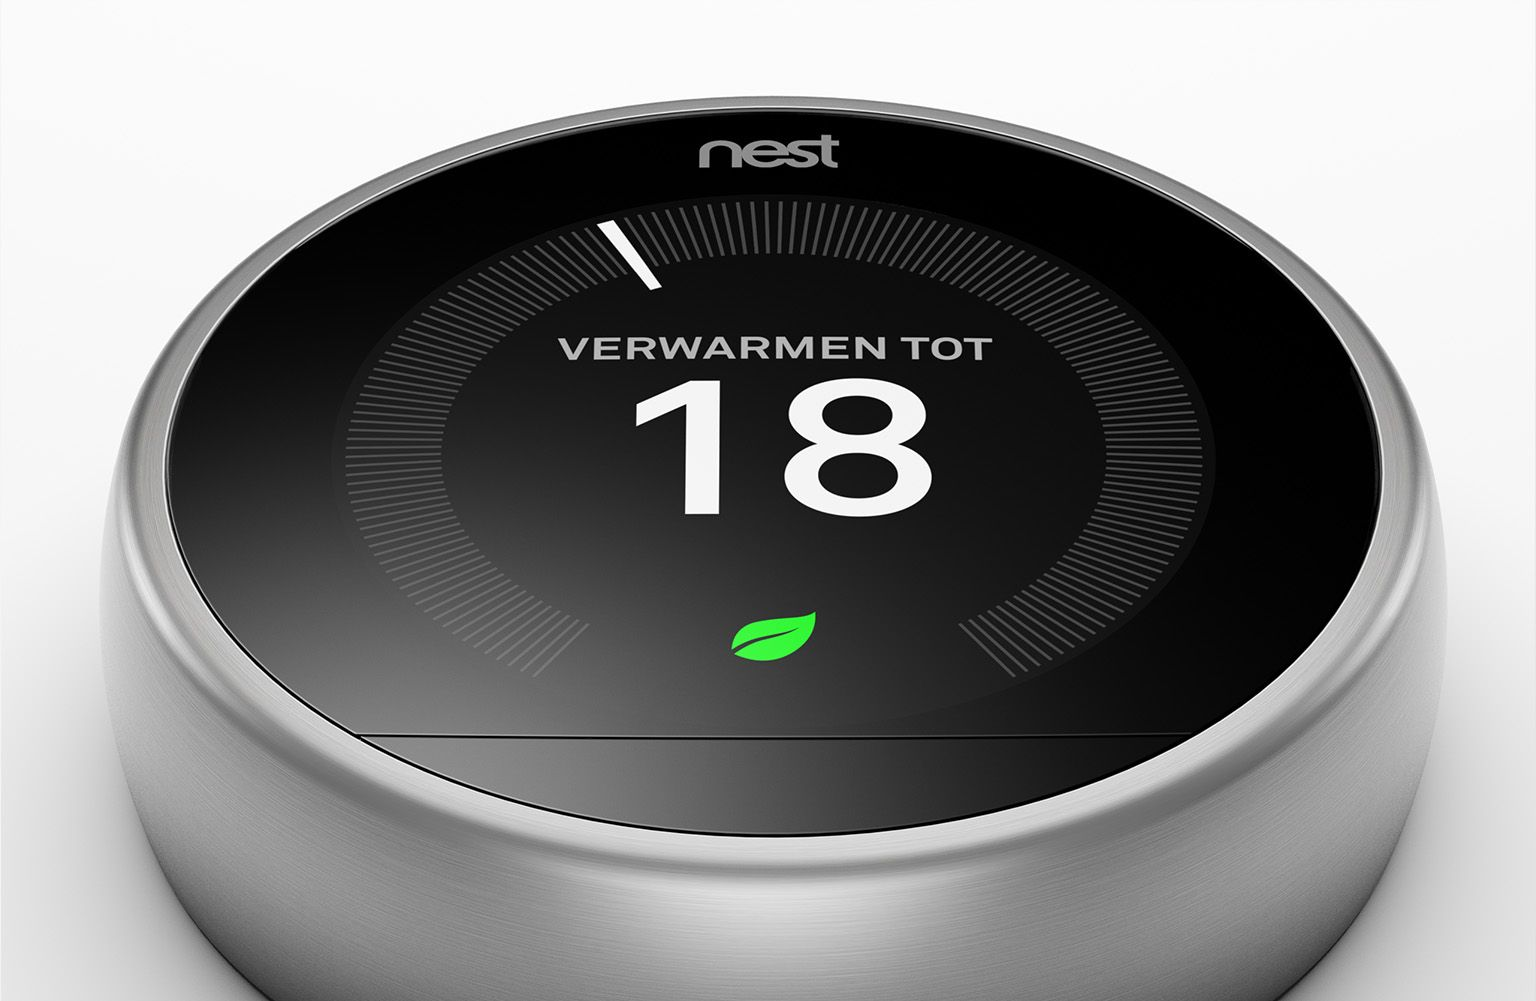 Pin by Bas Kamp on PRODUCT DESIGN Nest thermostat review